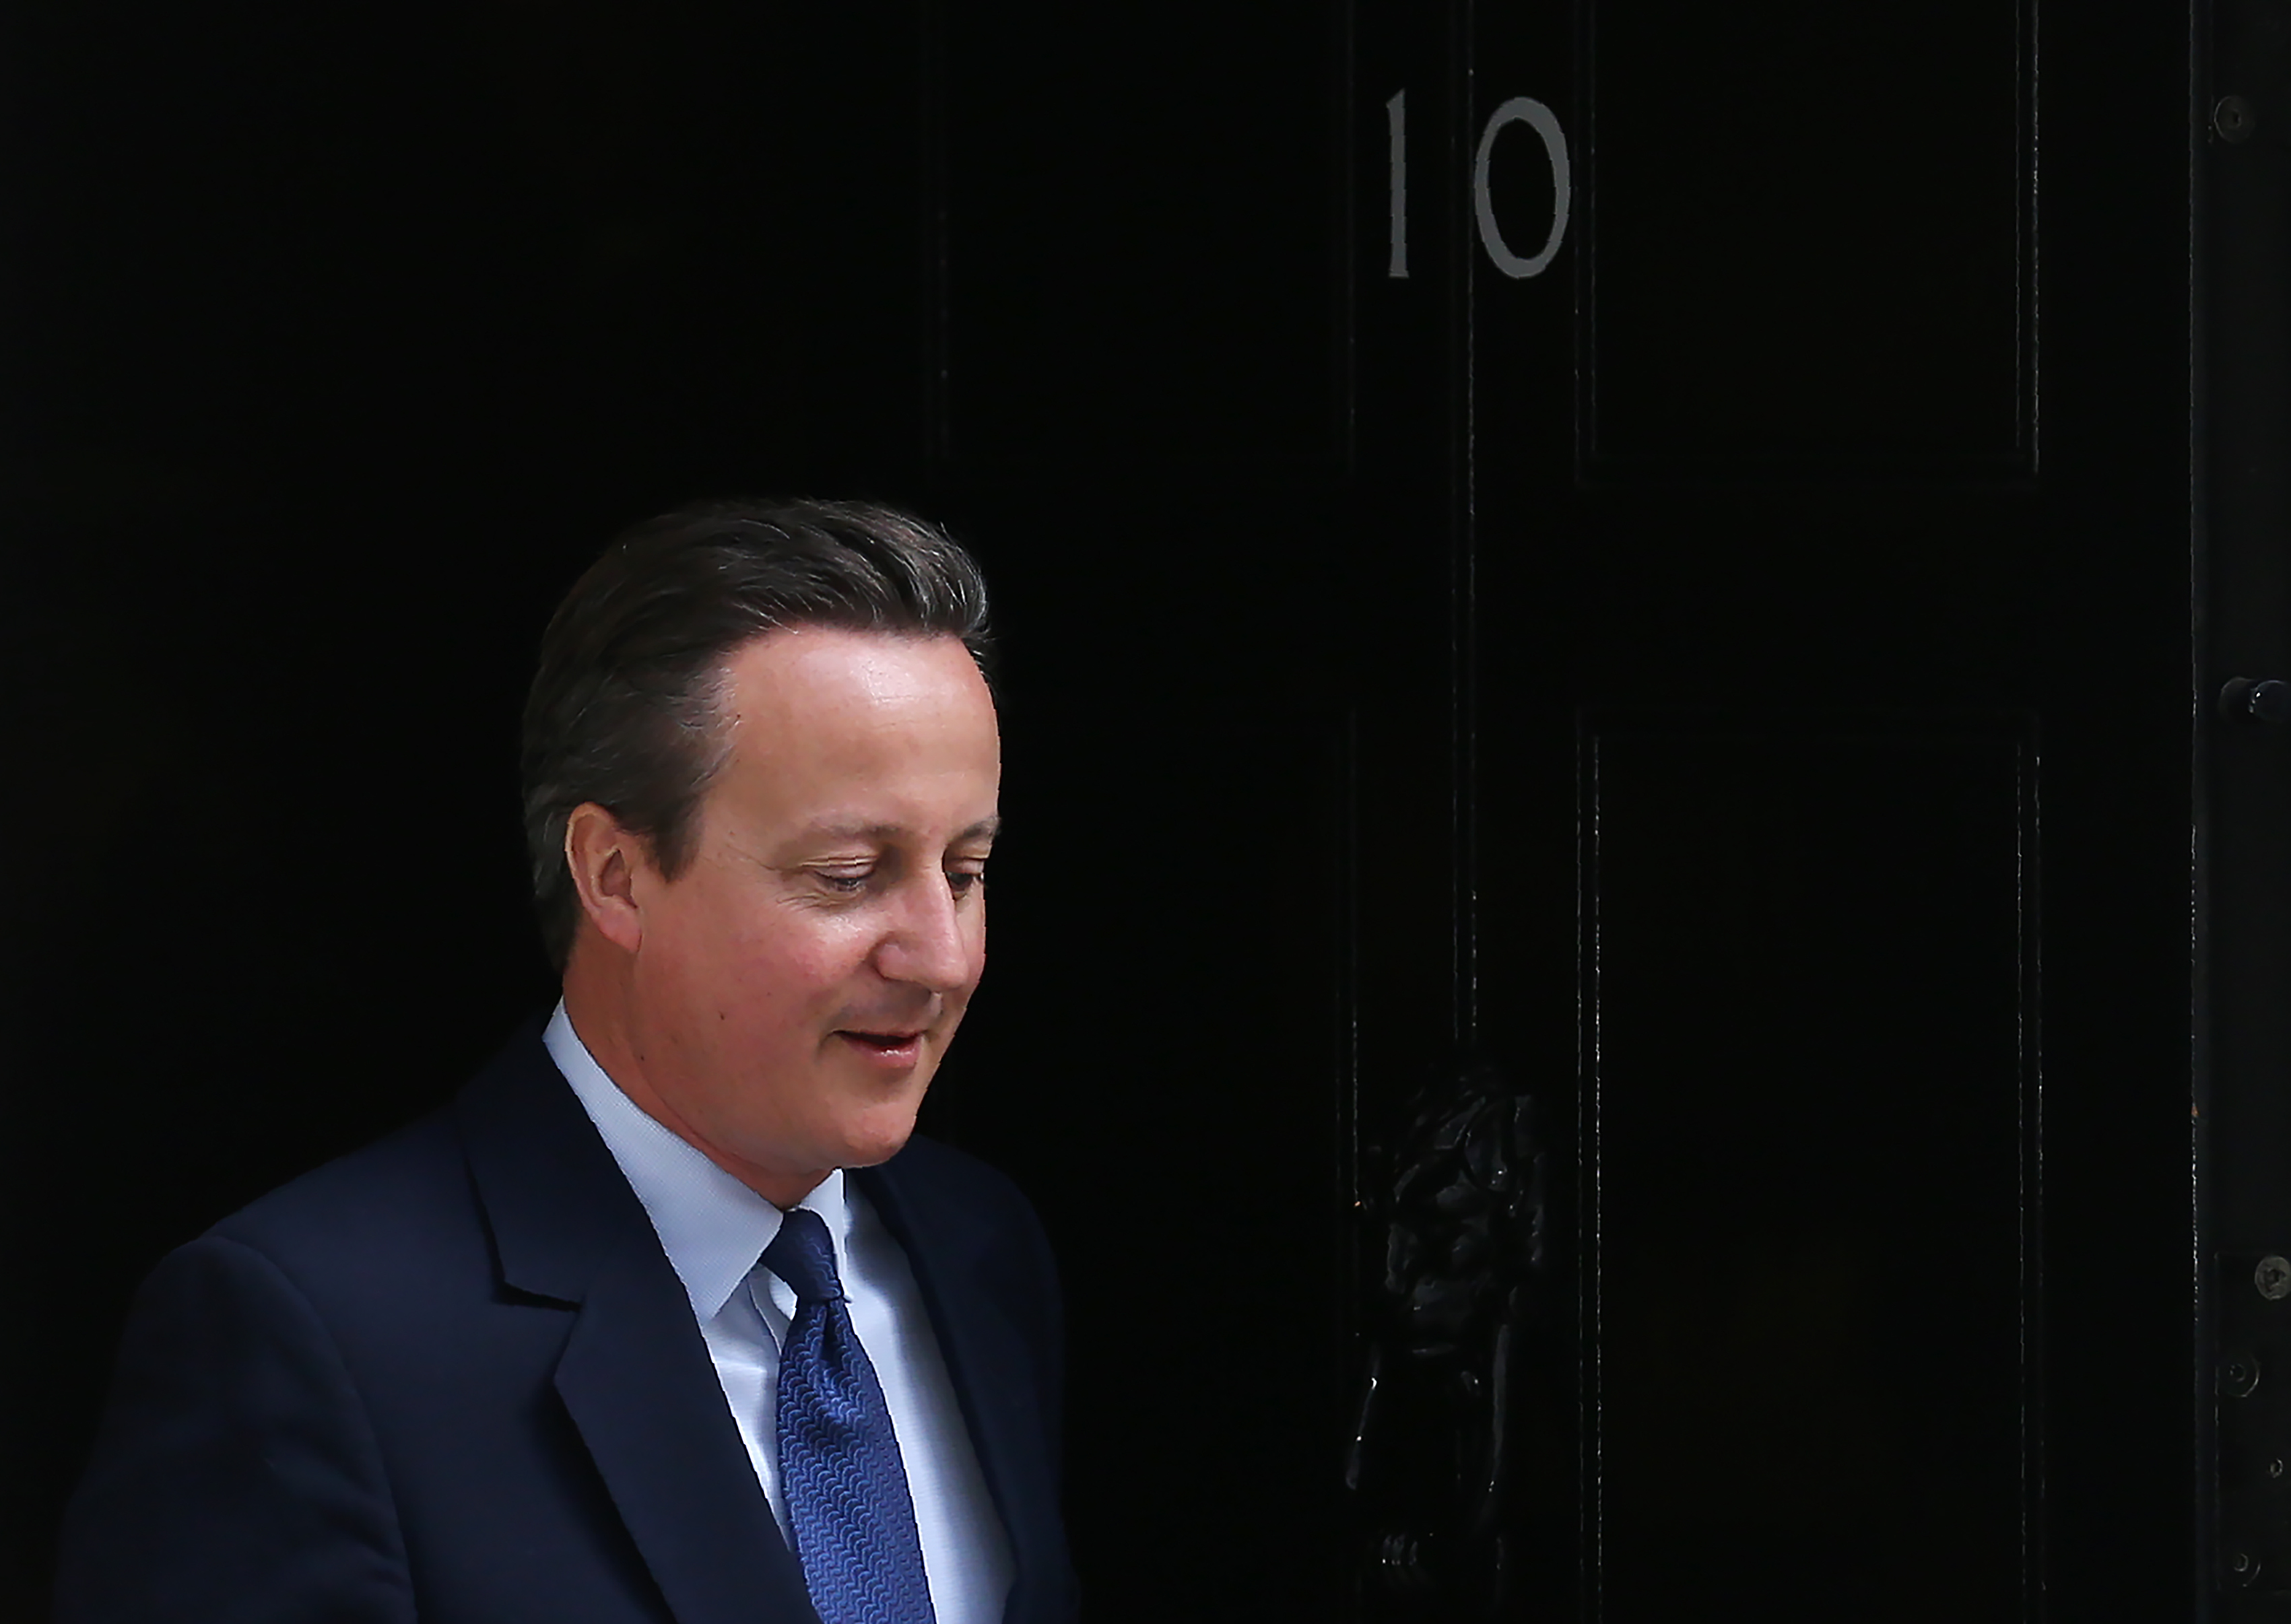 Britain's ougoing Prime Minister David Cameron leaves 10 Downing Street as he prepares to address his final Prime Minister's Question Time in the House of Commons in London on July 13, 2016.